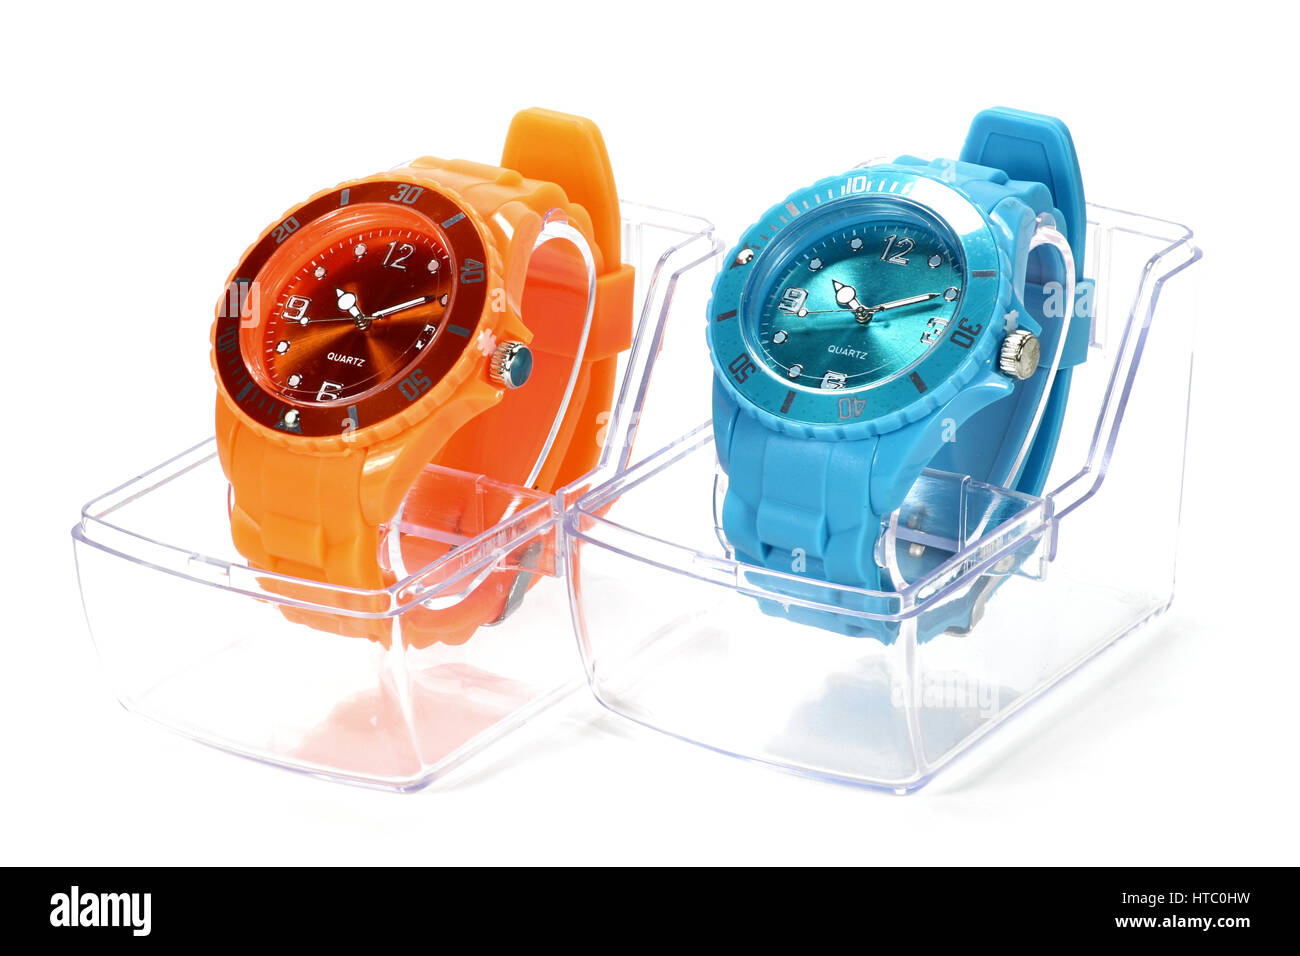 wristwatches isolated on white background - Stock Image